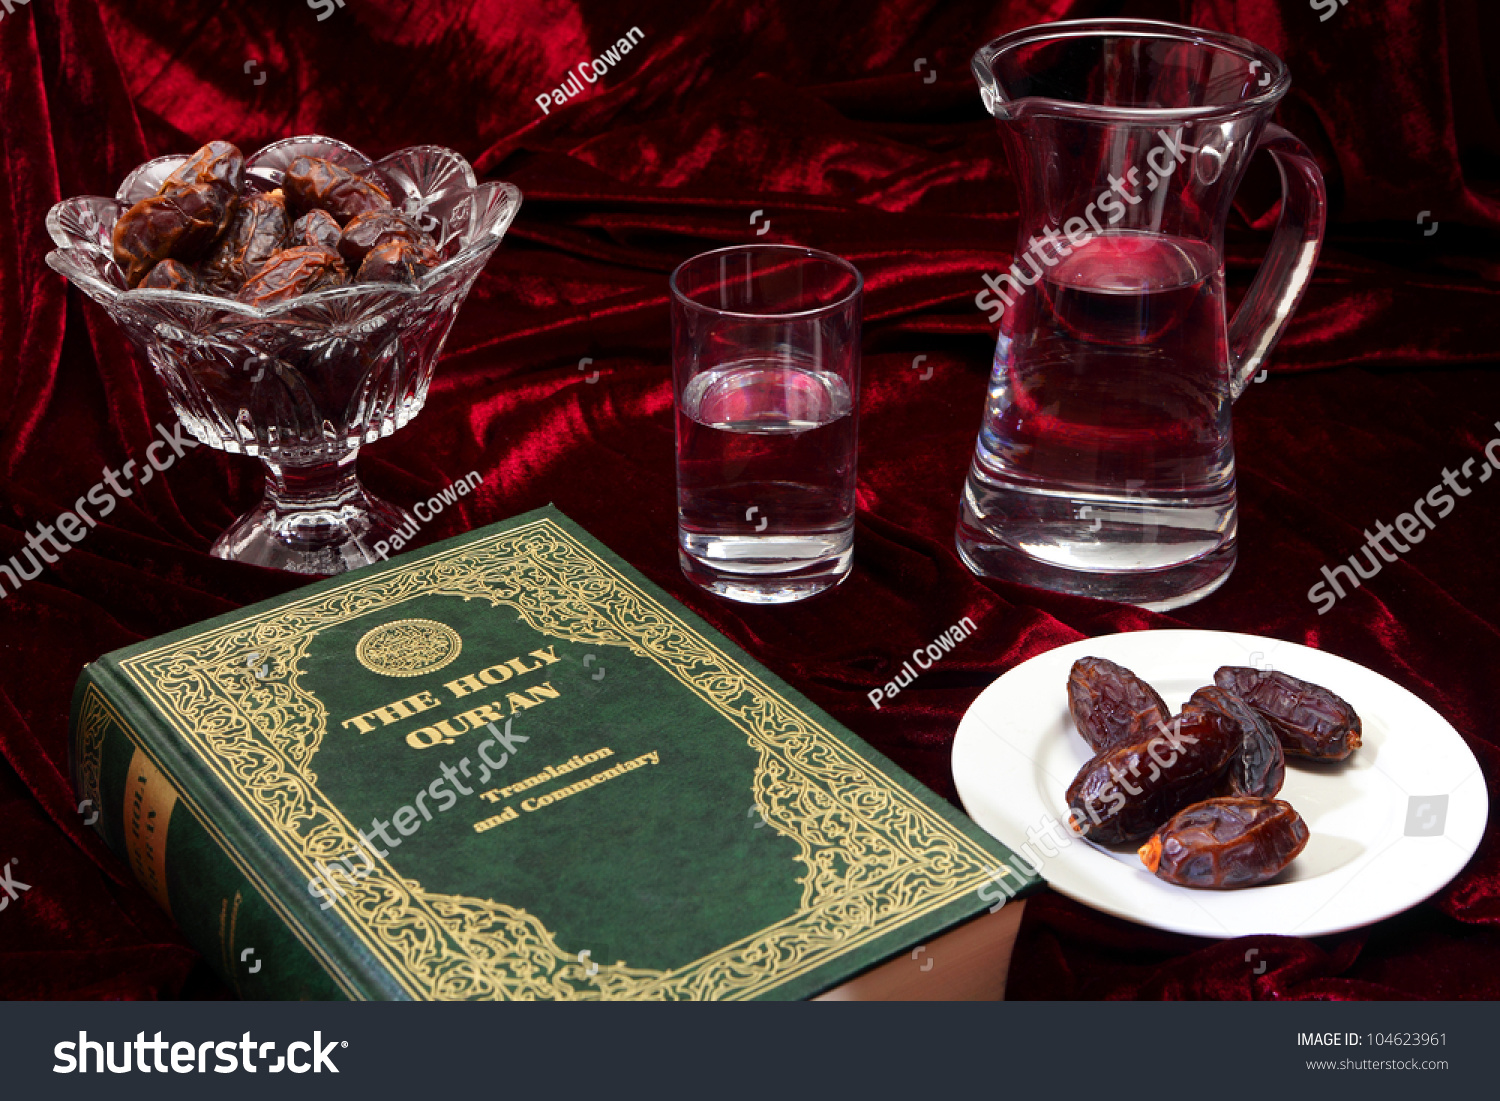 dates and water traditional foods for breaking the fast